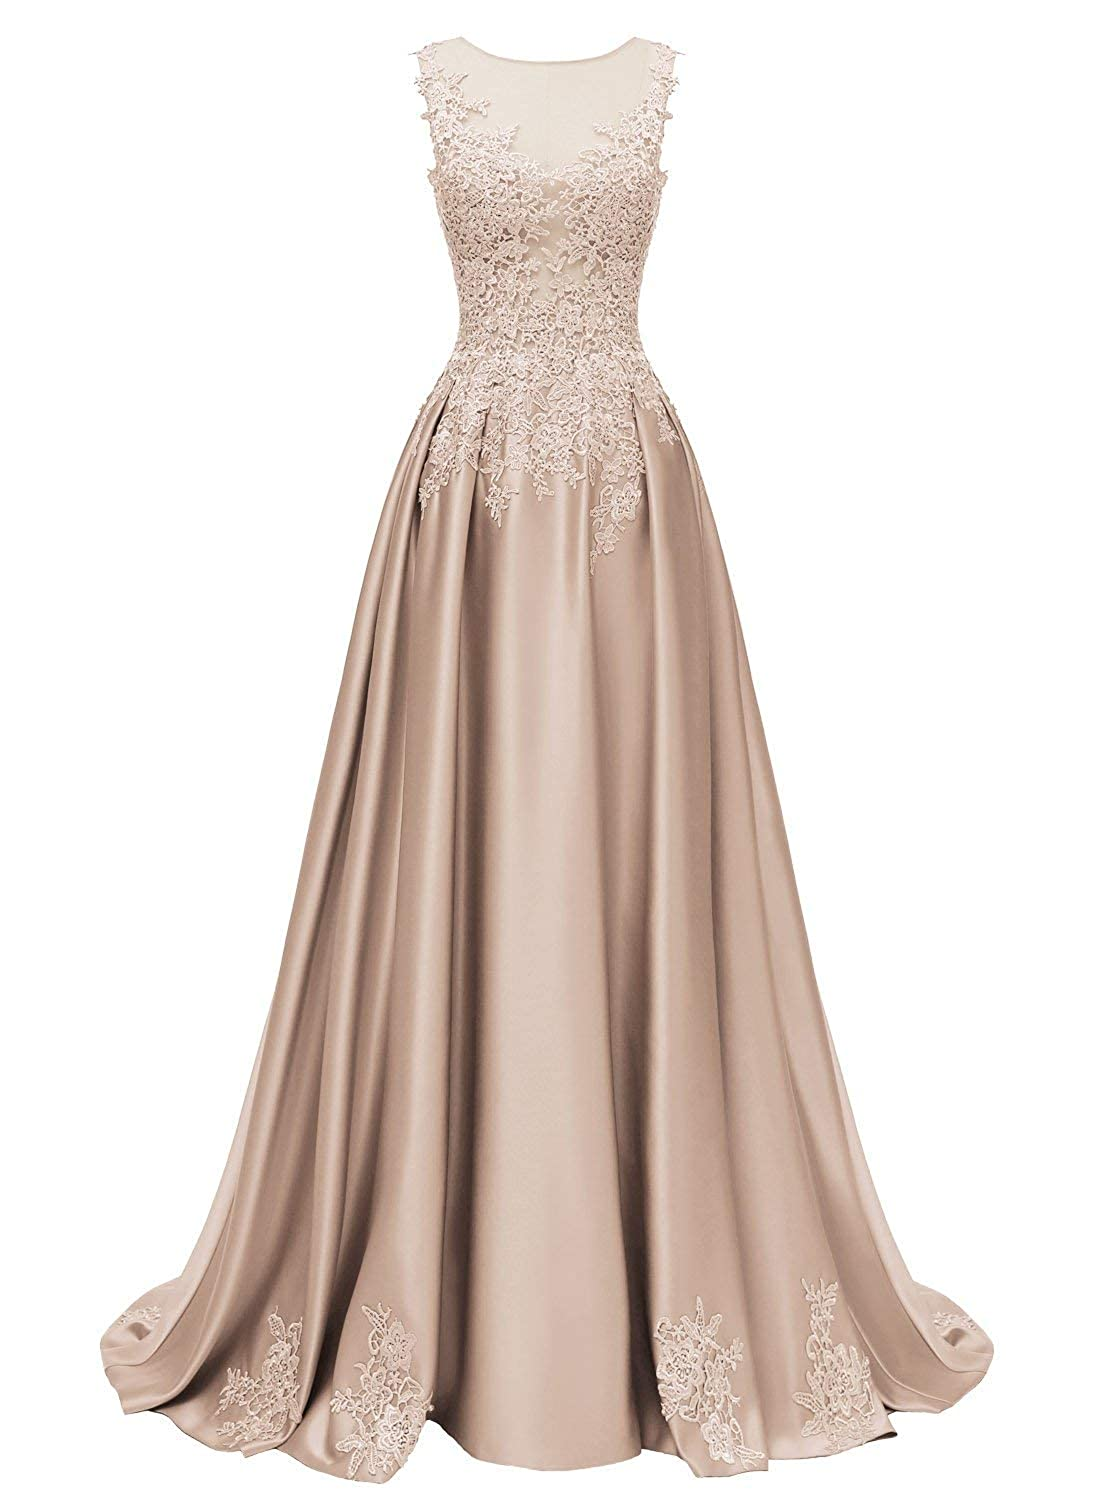 Champagne Dressytailor Aline Scoop Long Satin Appliques Beading Prom Dress Formal Evening Gown with Pockets